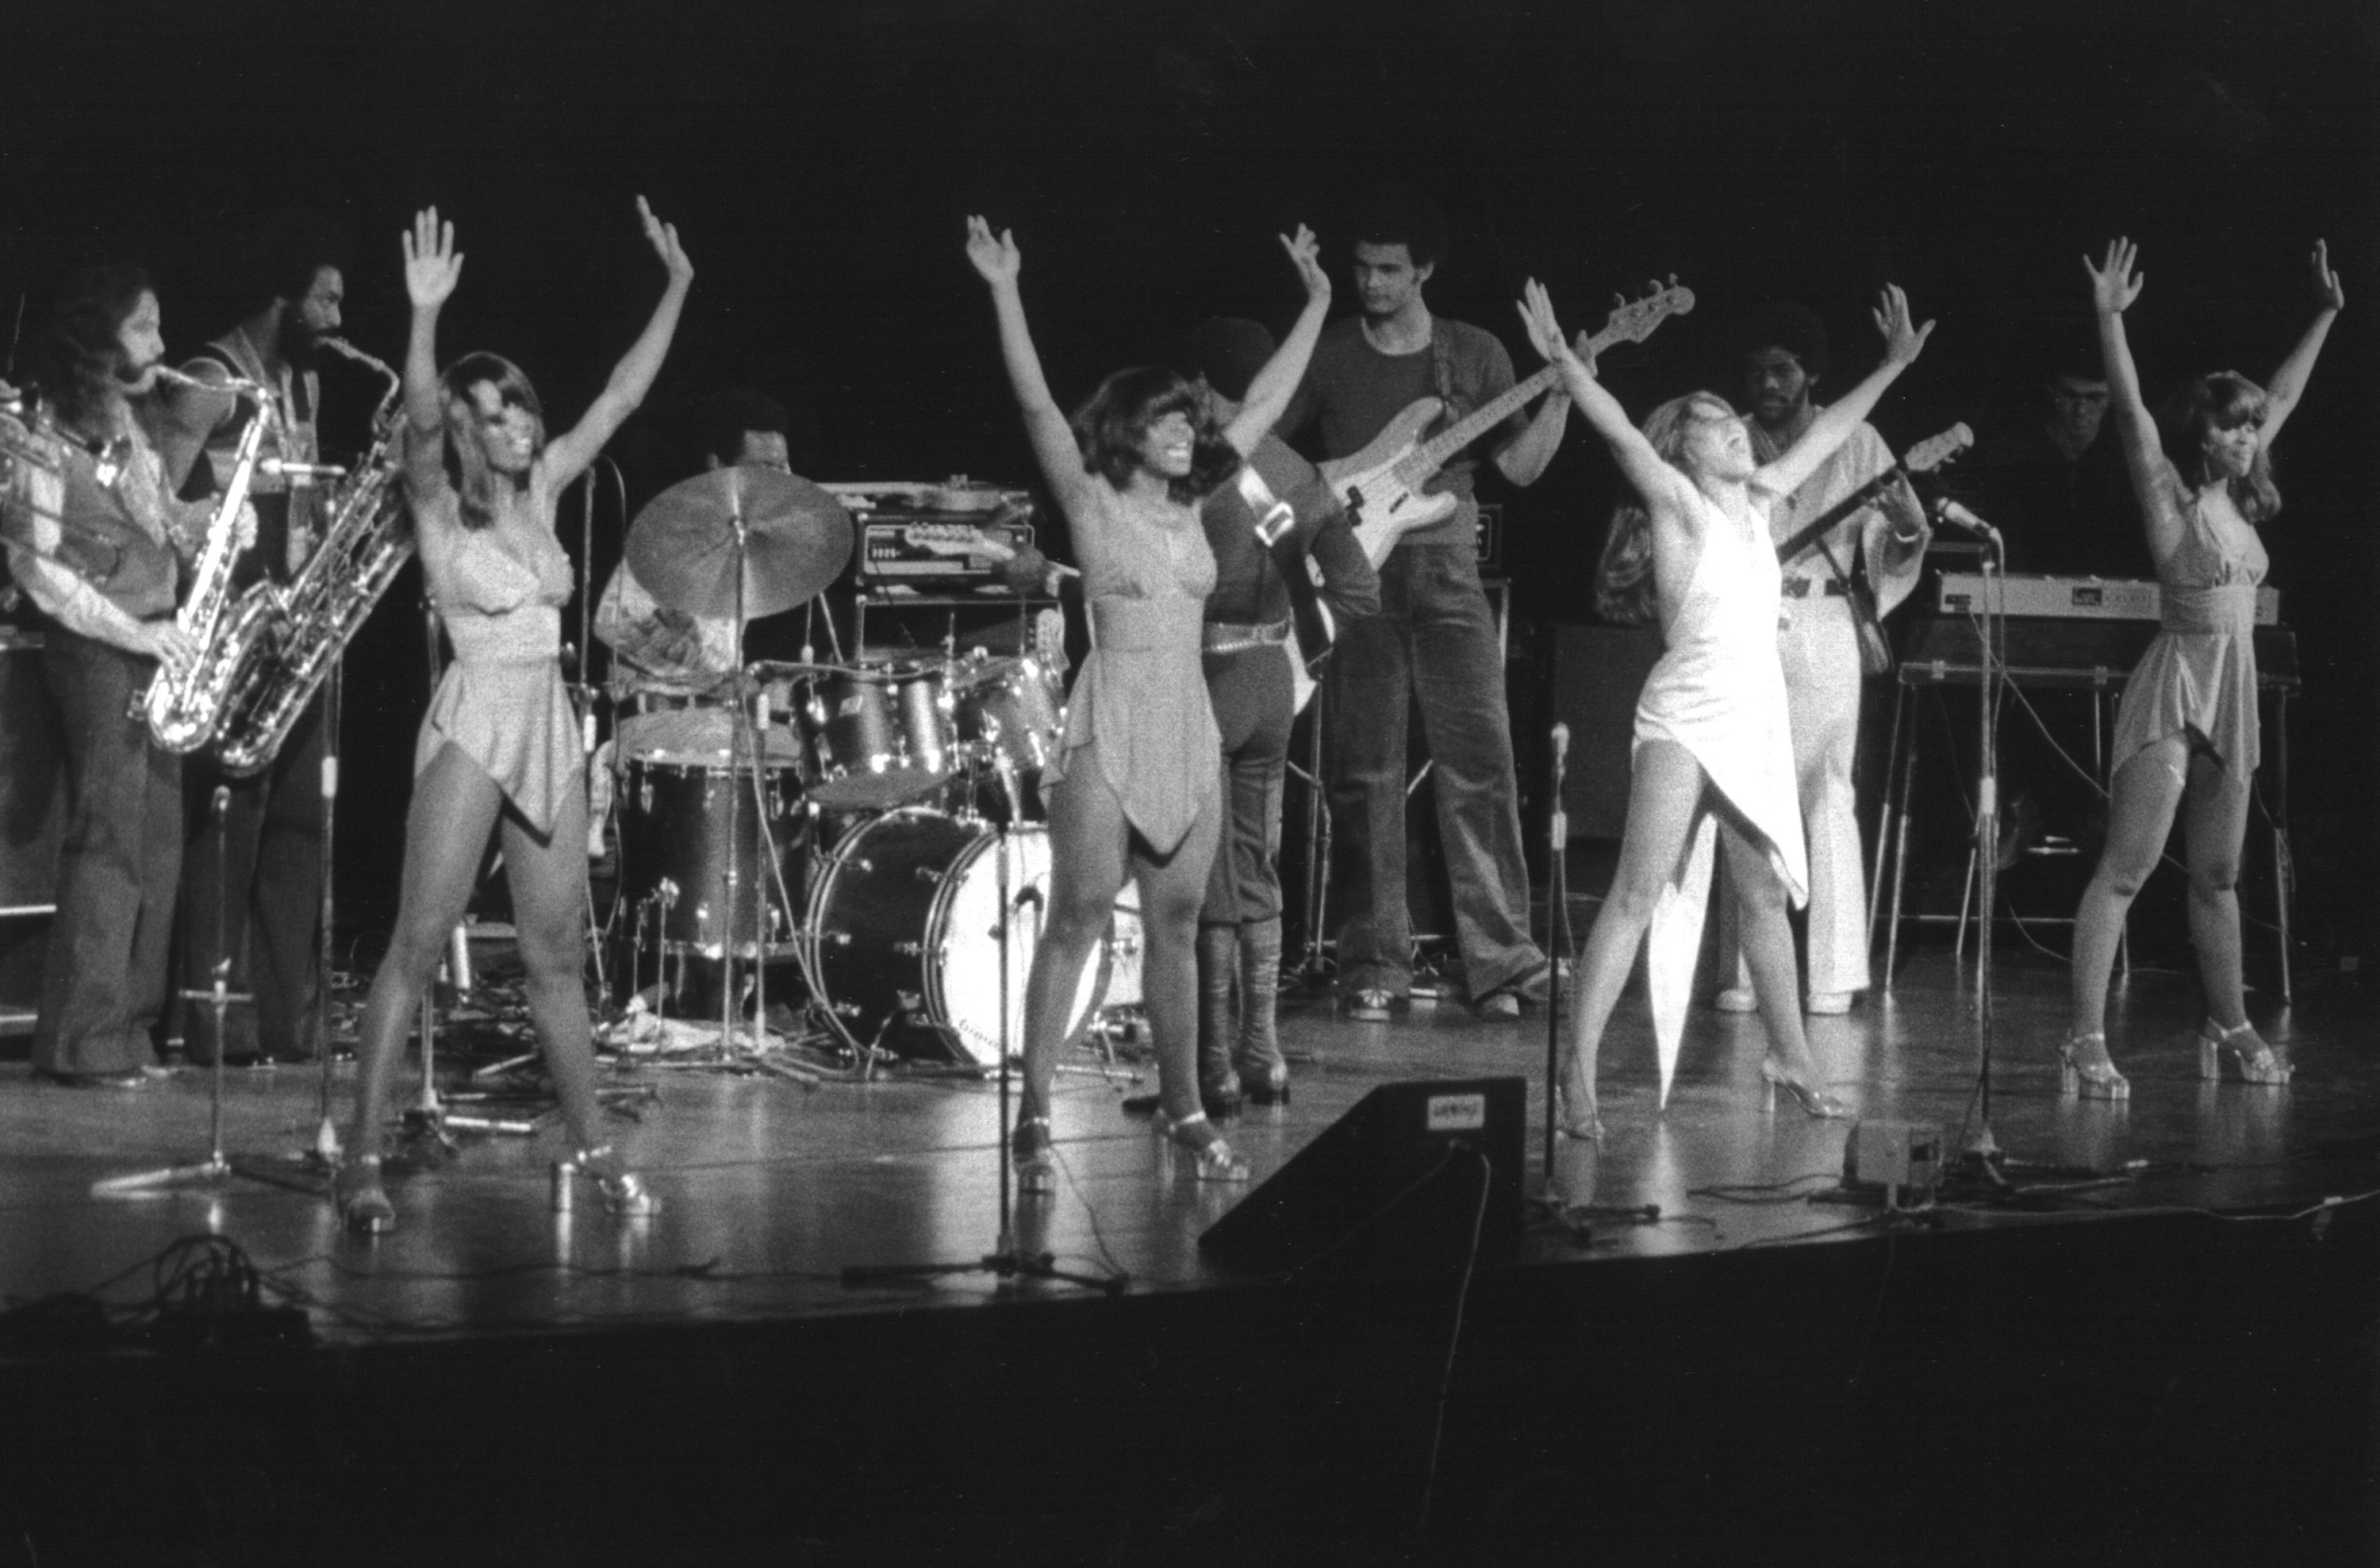 Tina Turner performing in 1973